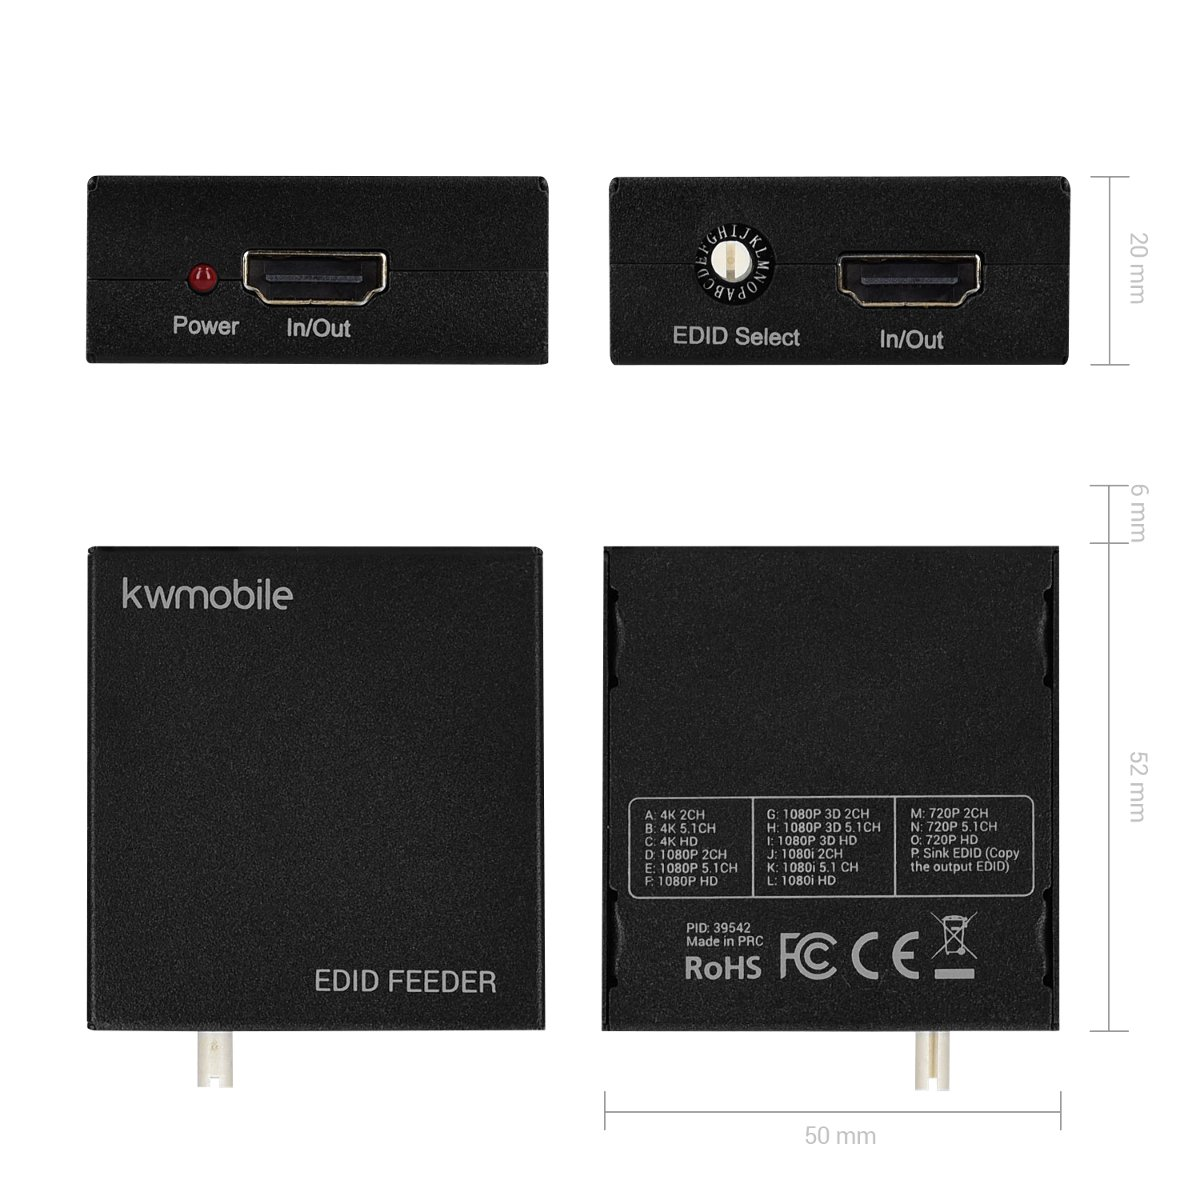 distribuzione segnali audio video tra dispositivi HDMI emulatore EDID regolabile manualmente kwmobile HDMI EDID Feeder Manager